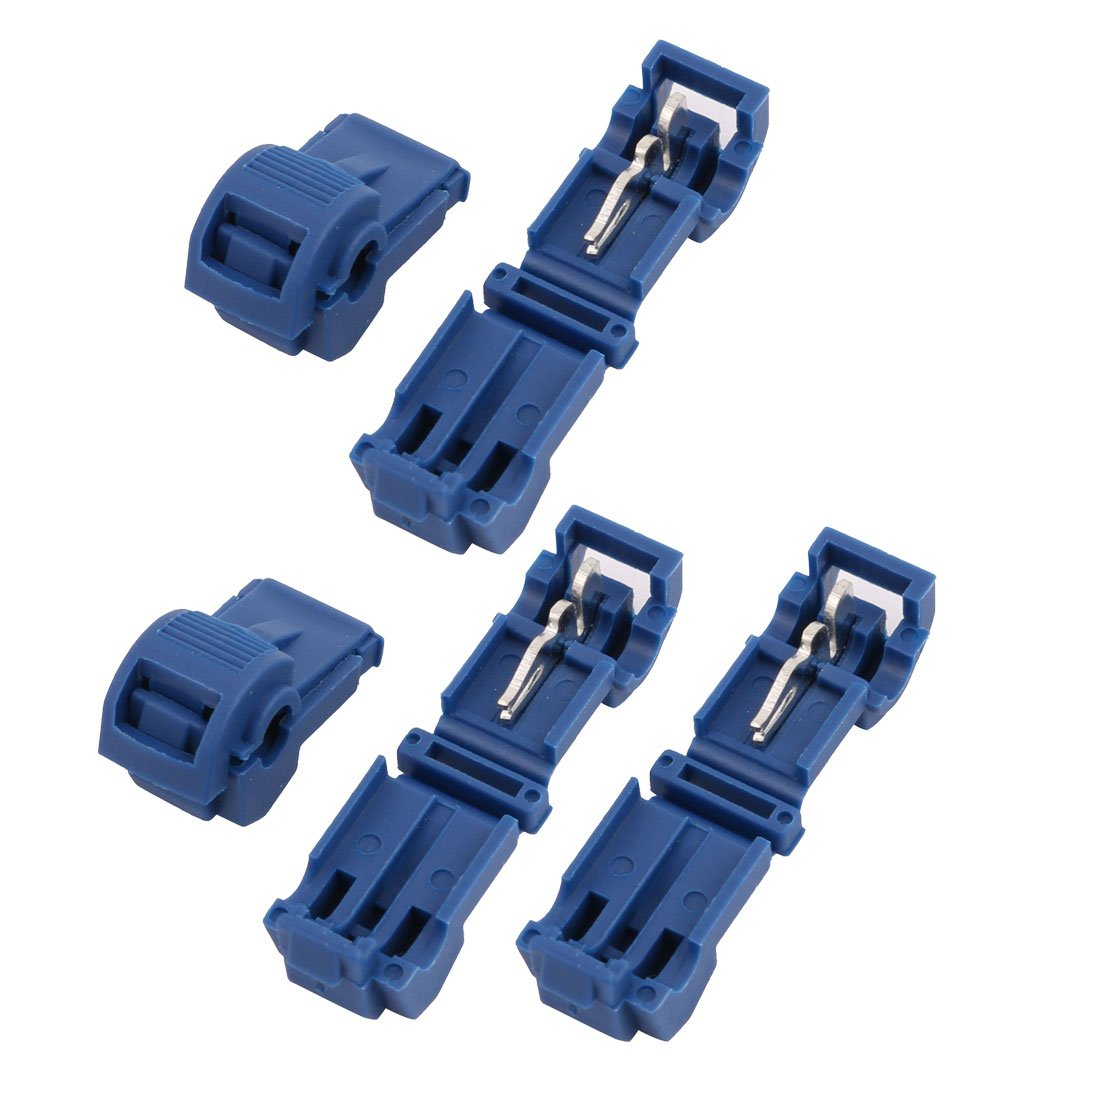 uxcell 5Pcs Self-Stripping Electrical T-Tap Wire Spade Connectors Terminal Crimp Kit Blue